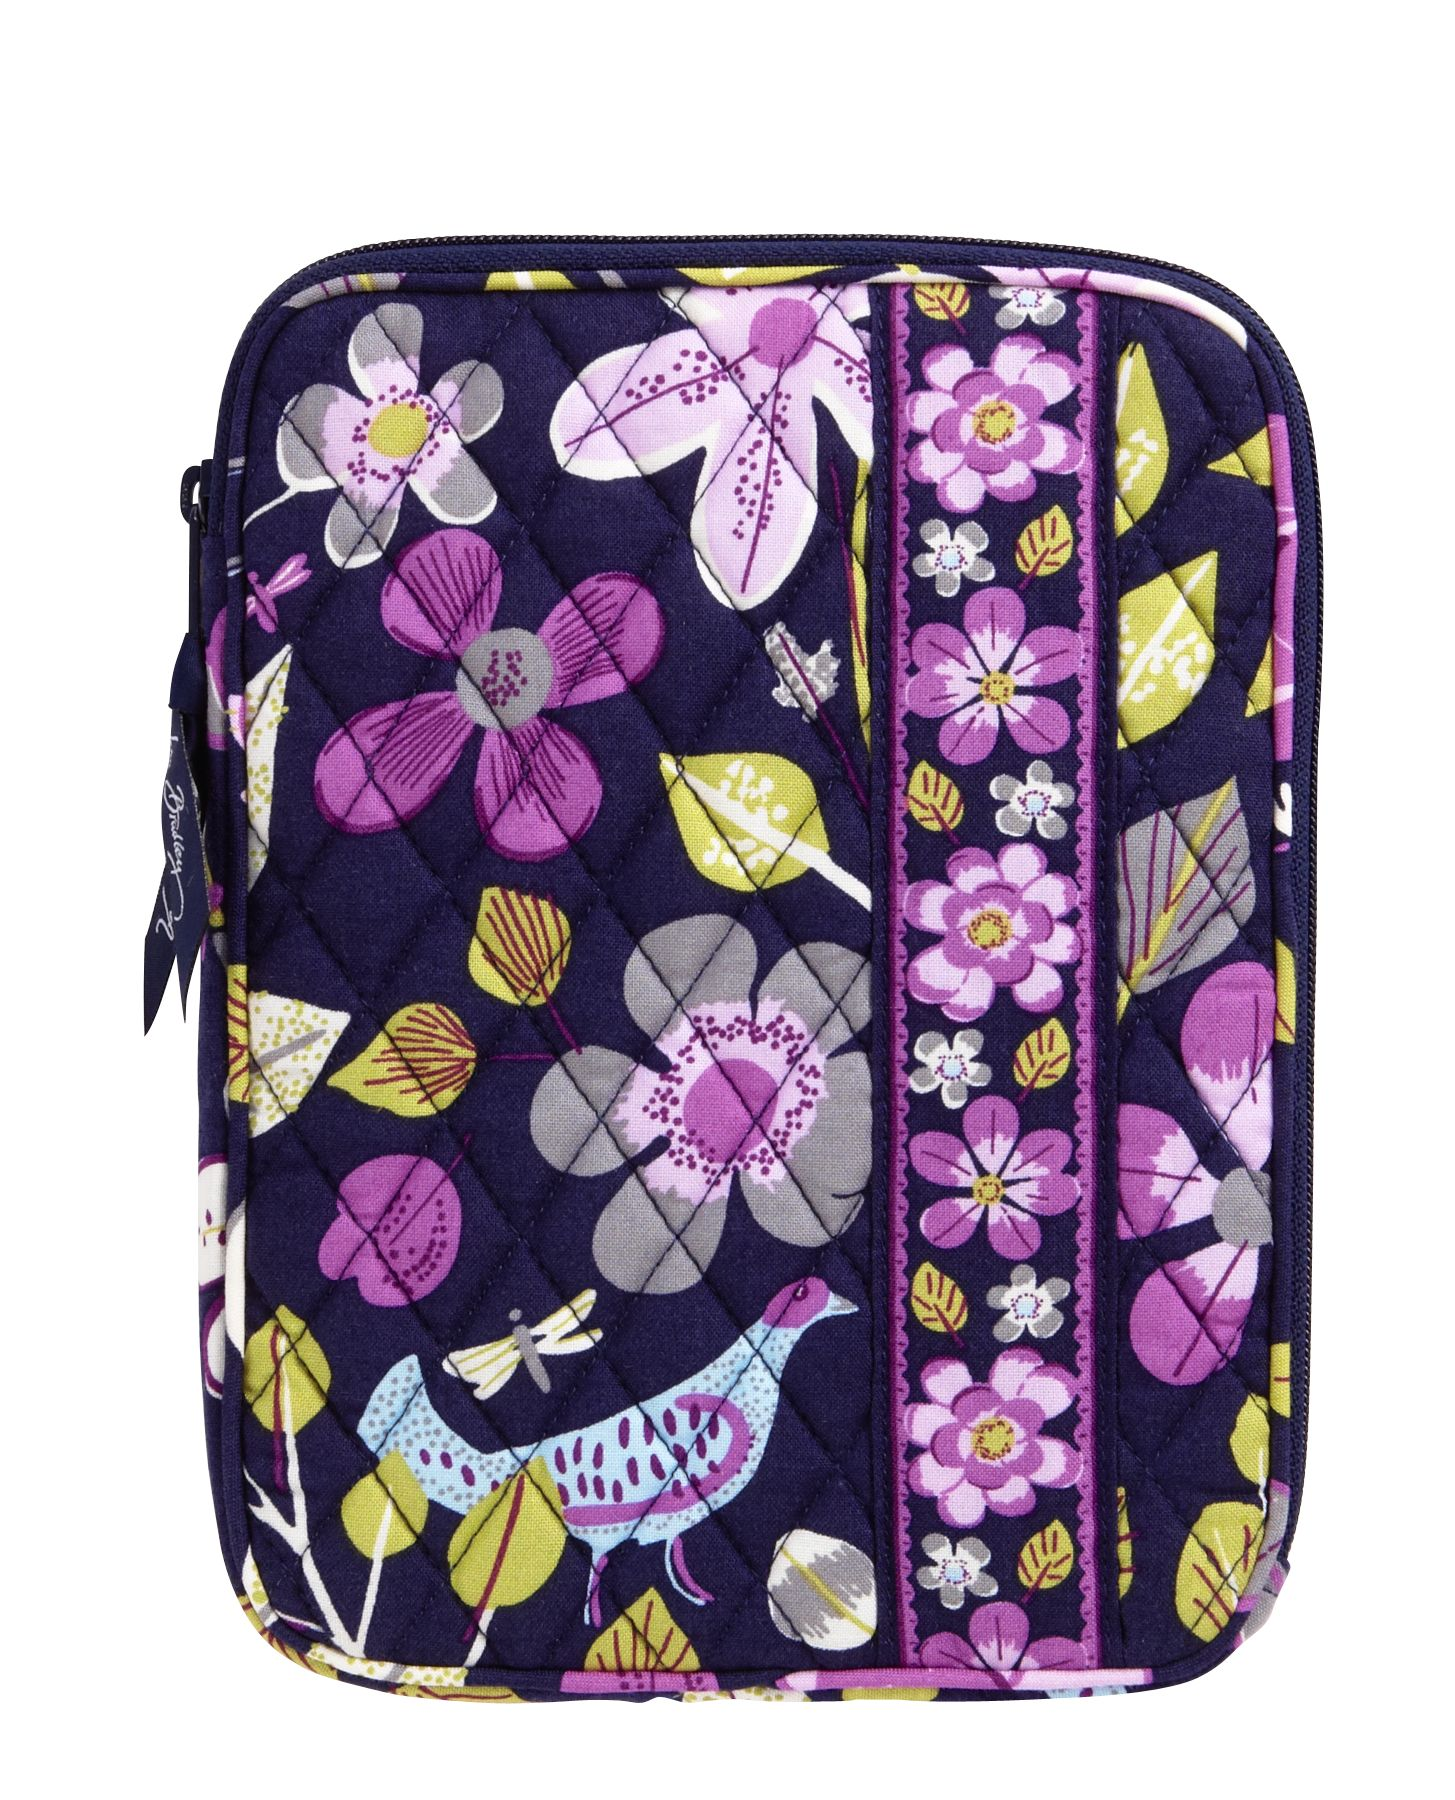 Vera Bradley E-Reader Sleeve in Floral Nightingale